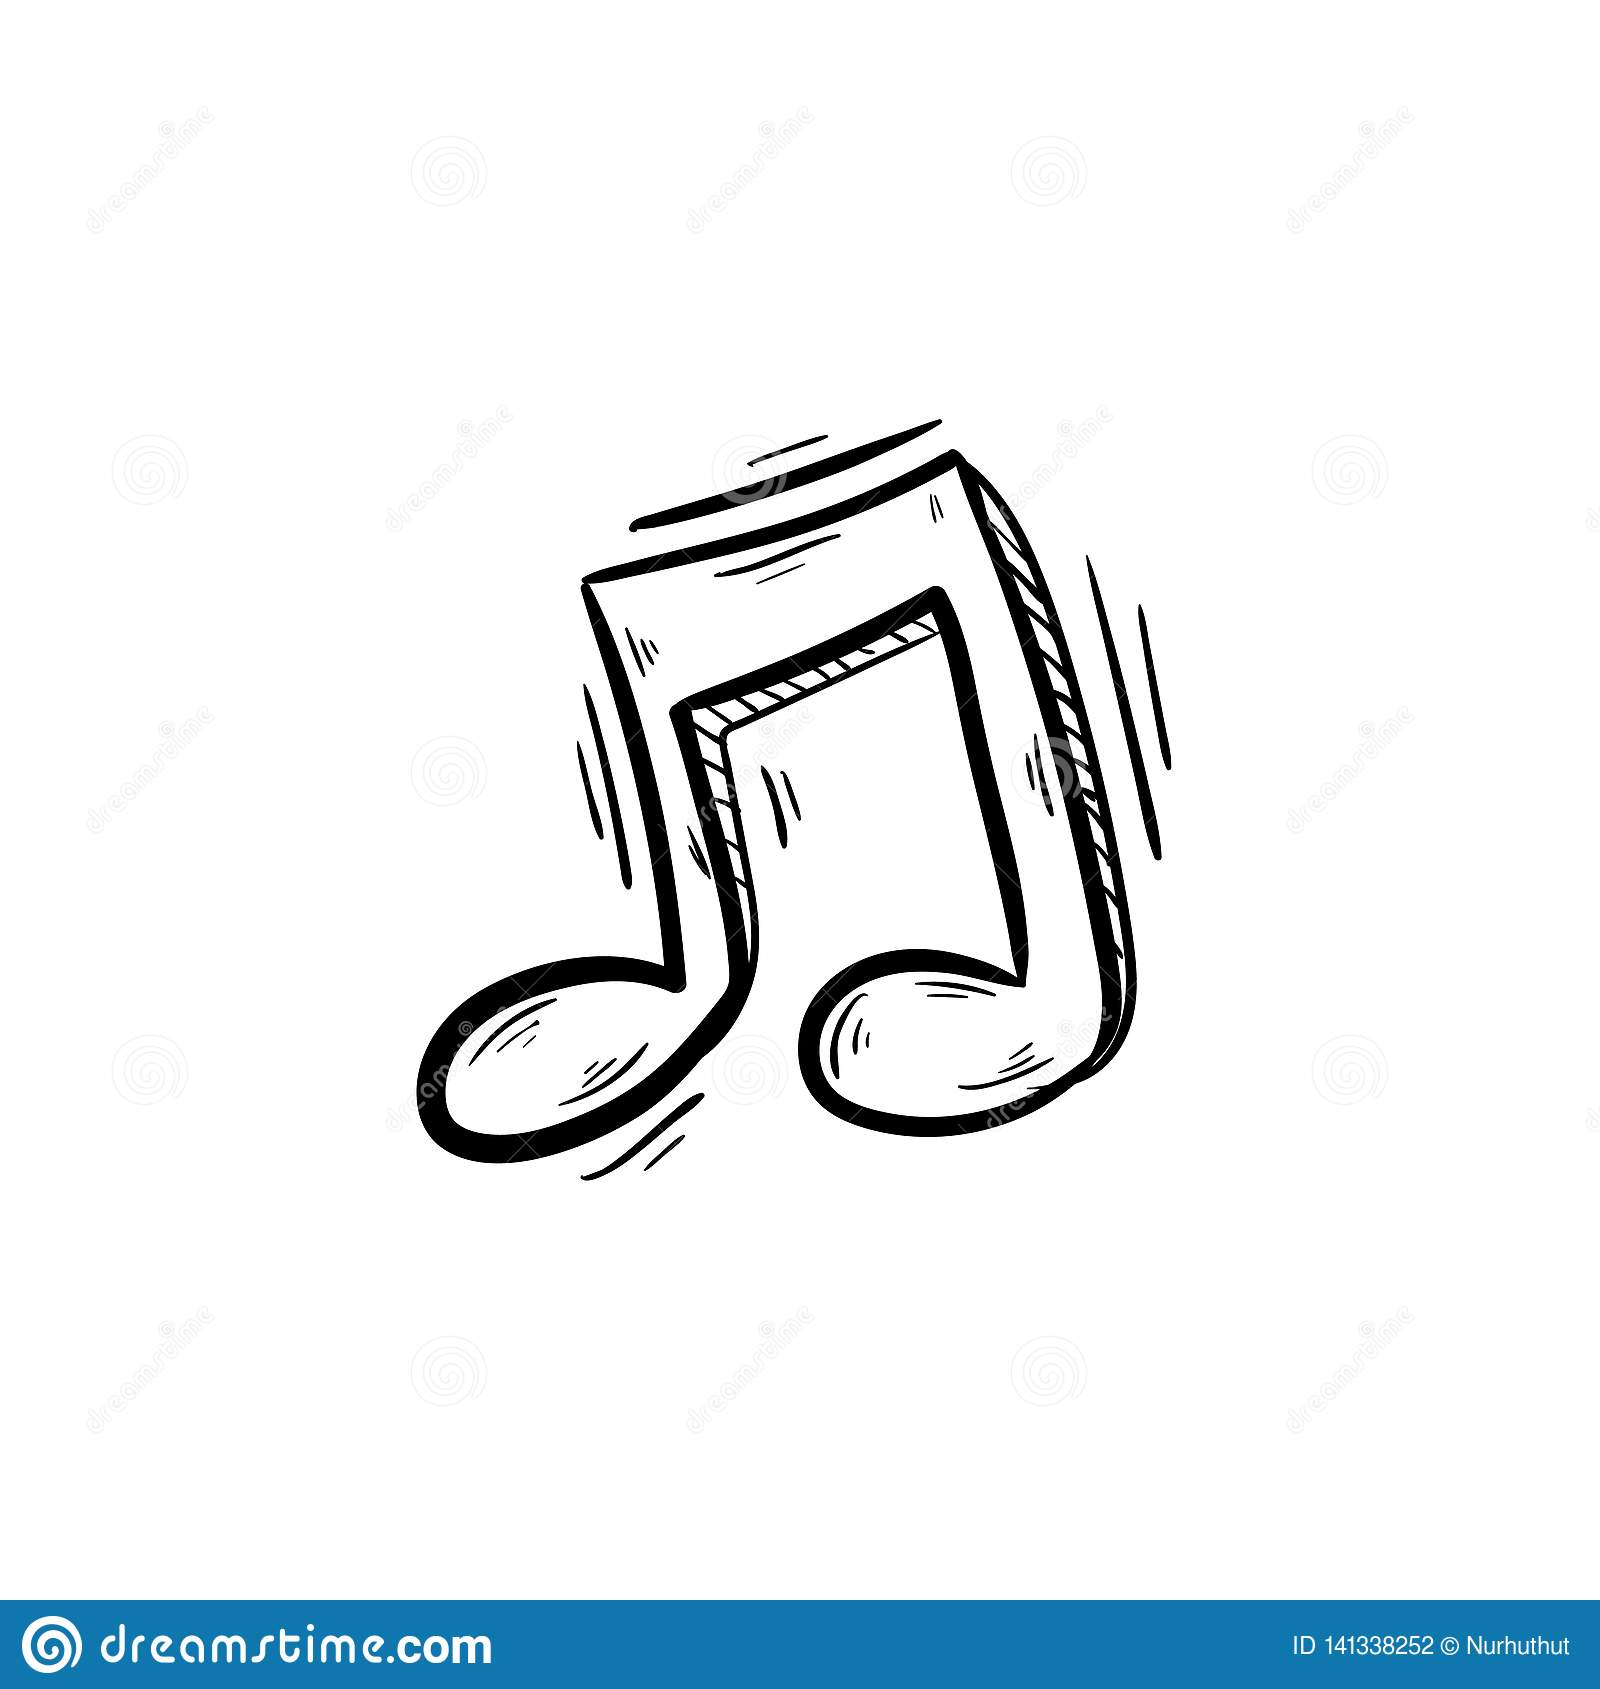 Music Note Doodle Hand Drawing Stock Vector Illustration Of Symbol Vector 141338252